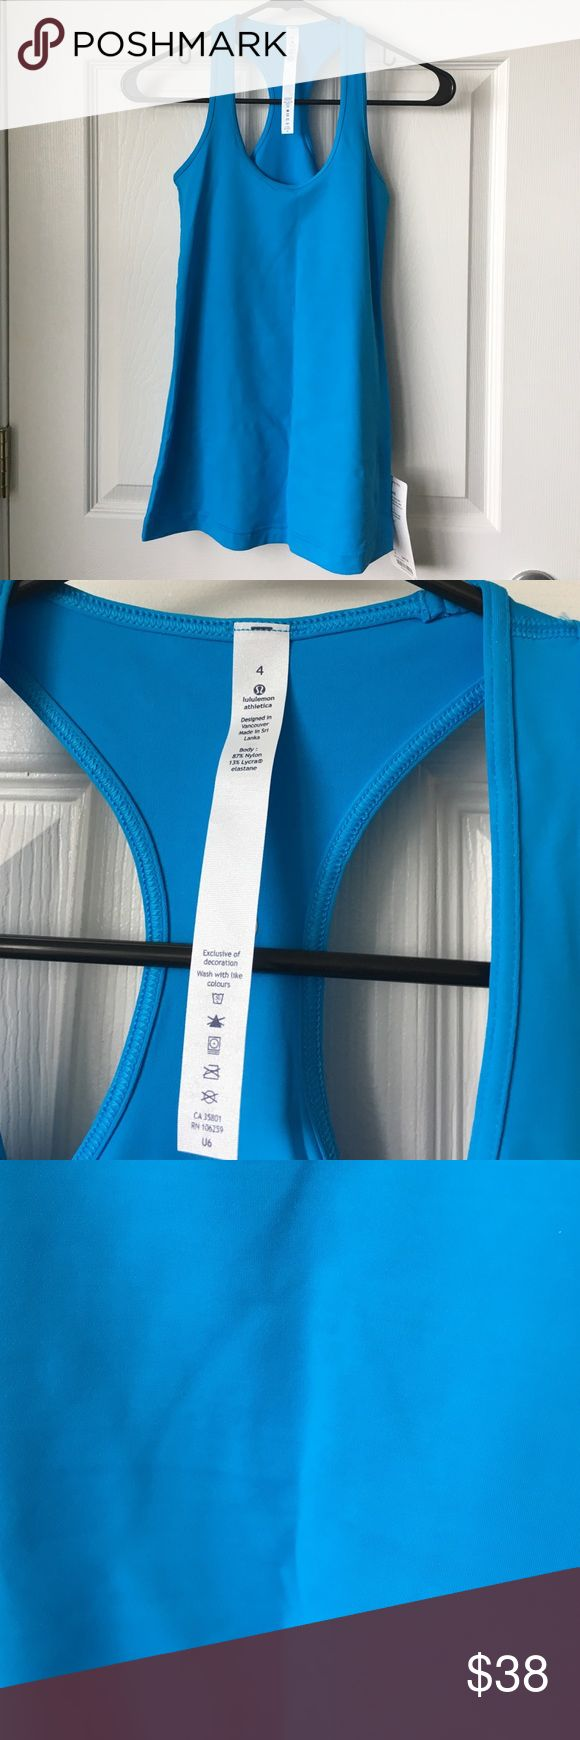 NWT LULULEMON Kayak Blue Cool Racerback Brand new with tags! No trades, please. lululemon athletica Tops Tank Tops